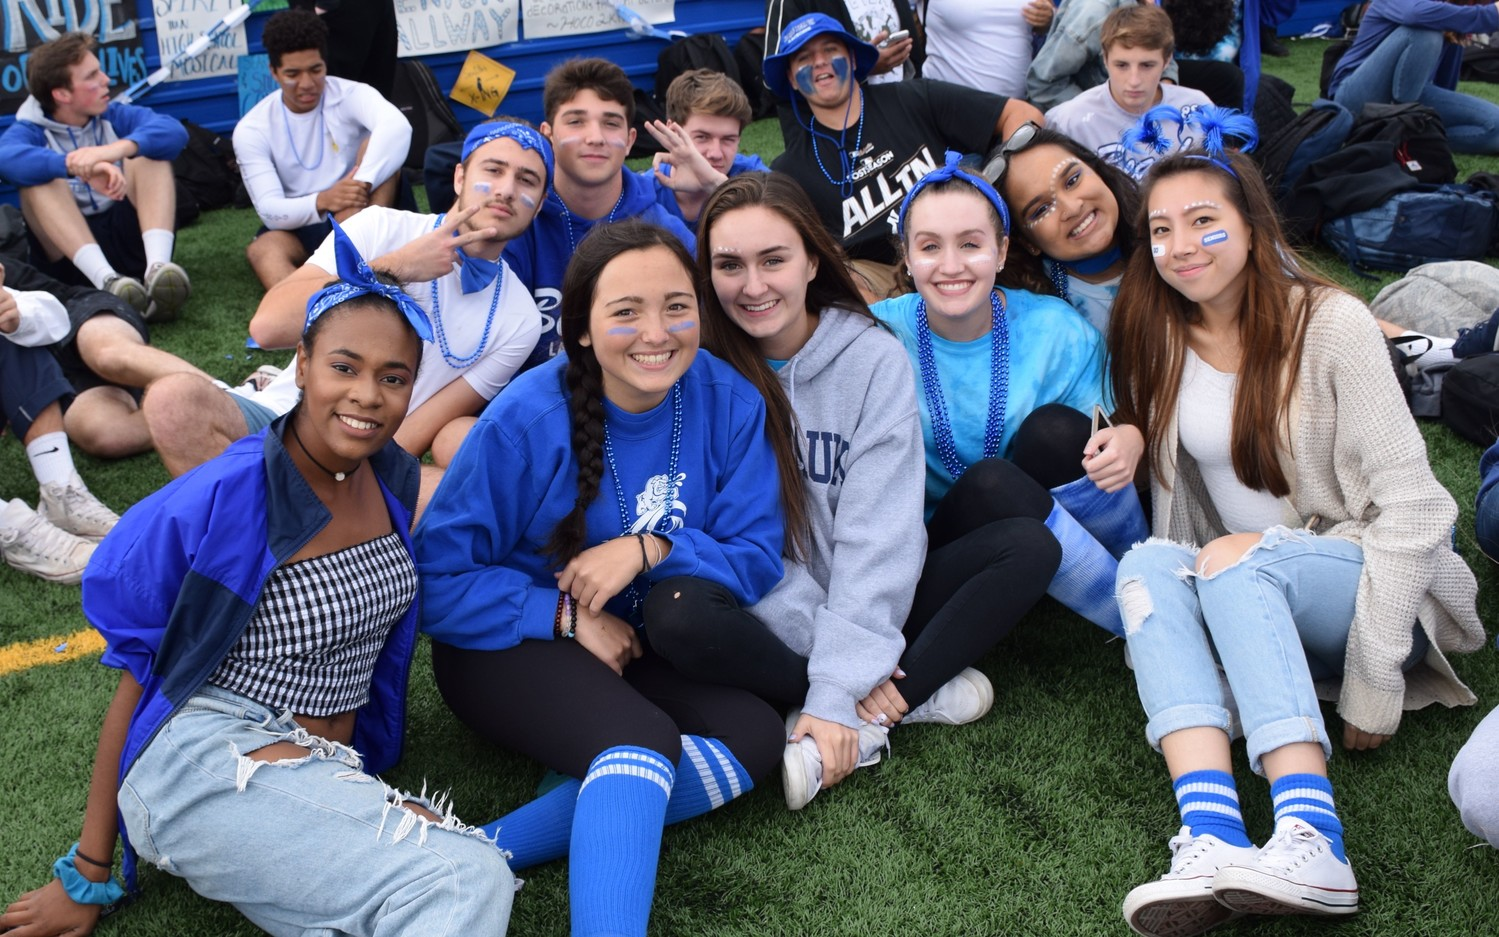 Students showed off their school spirit at the high school pep rally on Oct. 13.